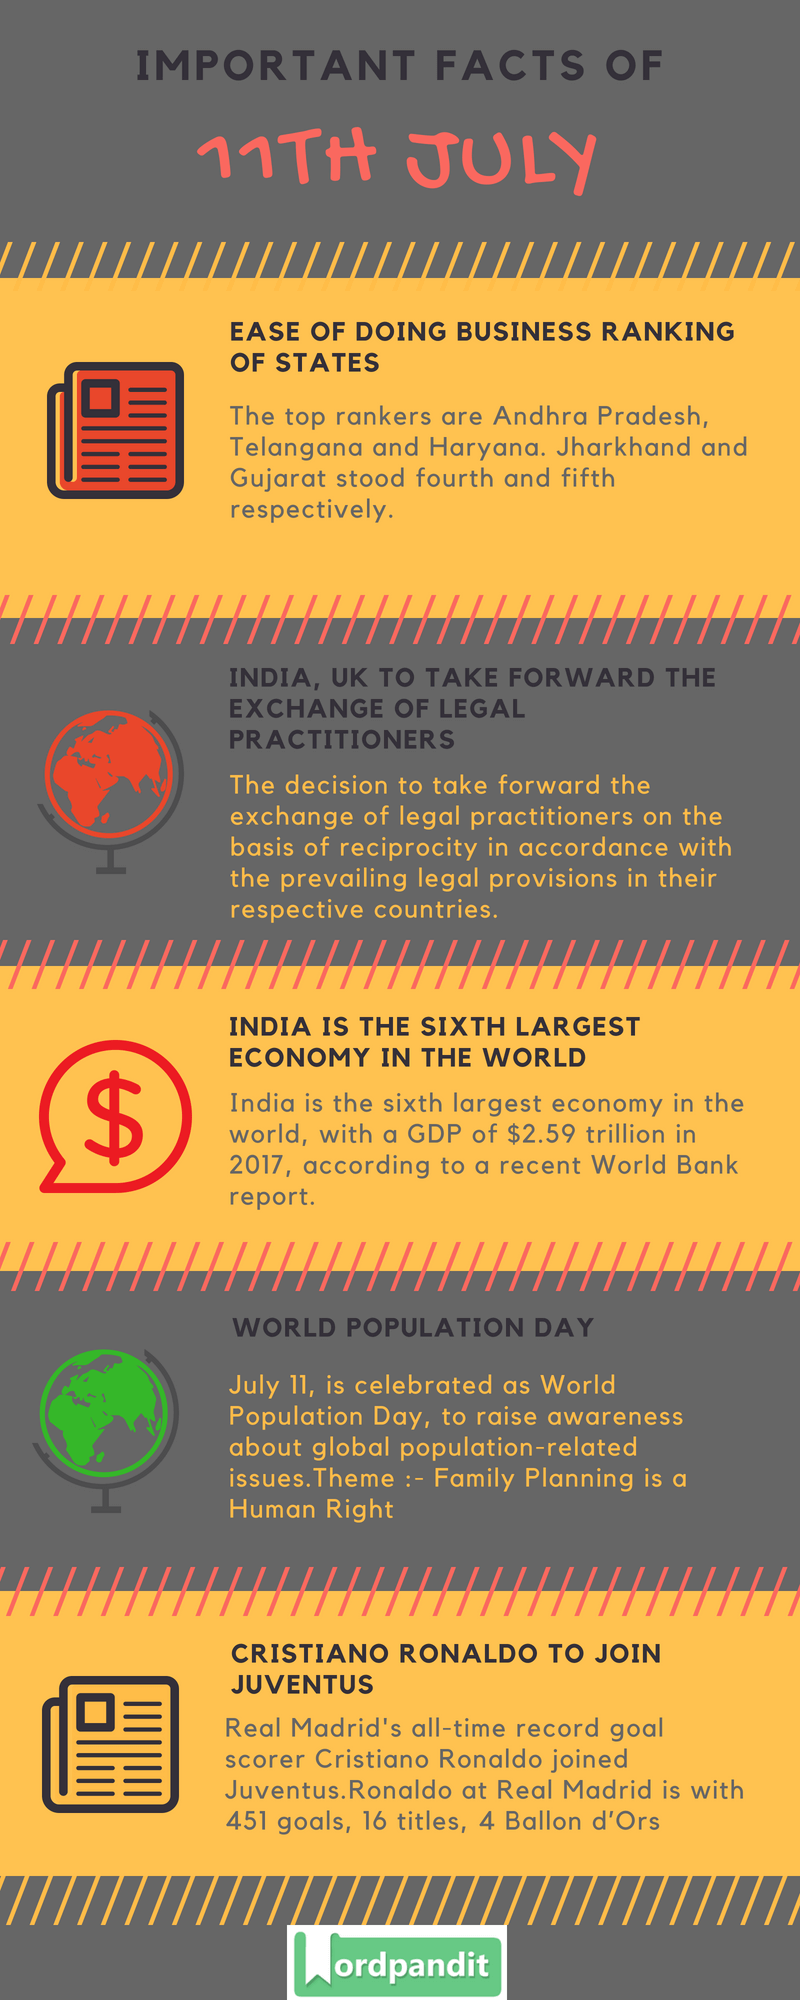 Daily Current Affairs 11 July 2018 Current Affairs Quiz July 11 2018 Current Affairs Infographic